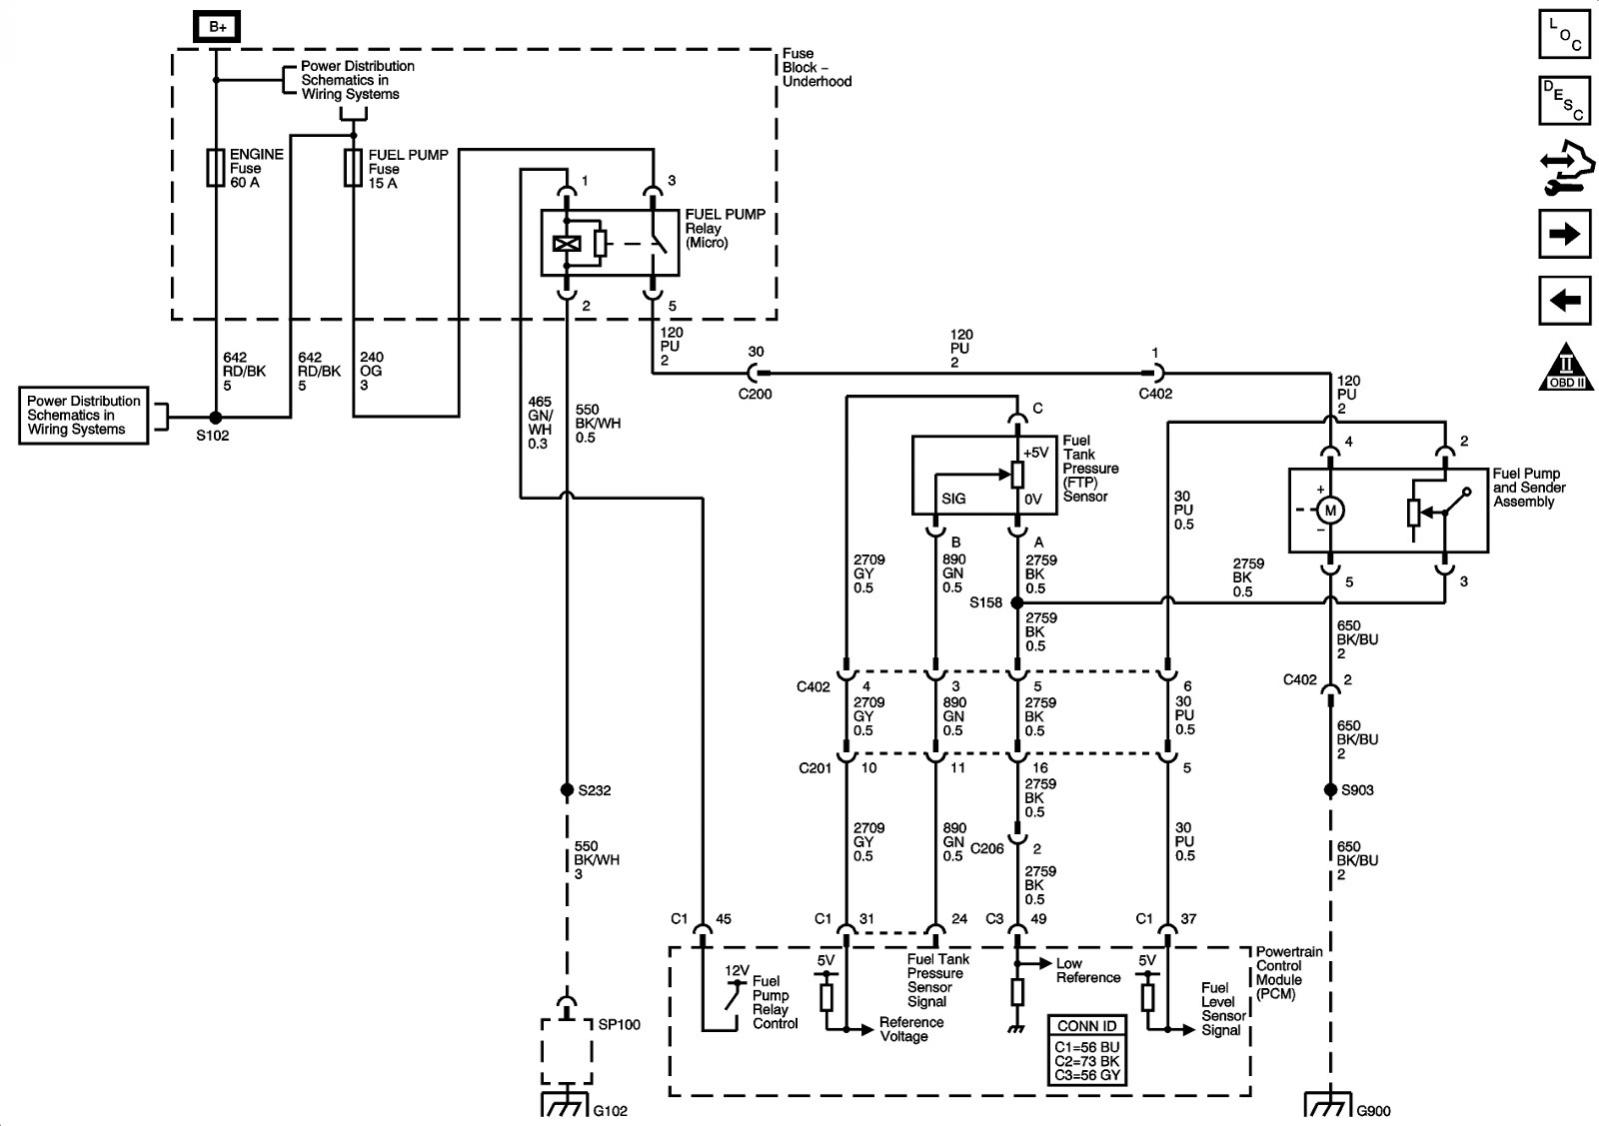 Stereo Wiring Diagram 2006 Pontiac Gto Diagrams 2005 Grand Prix Starter Wire Image Collections 2001 Am